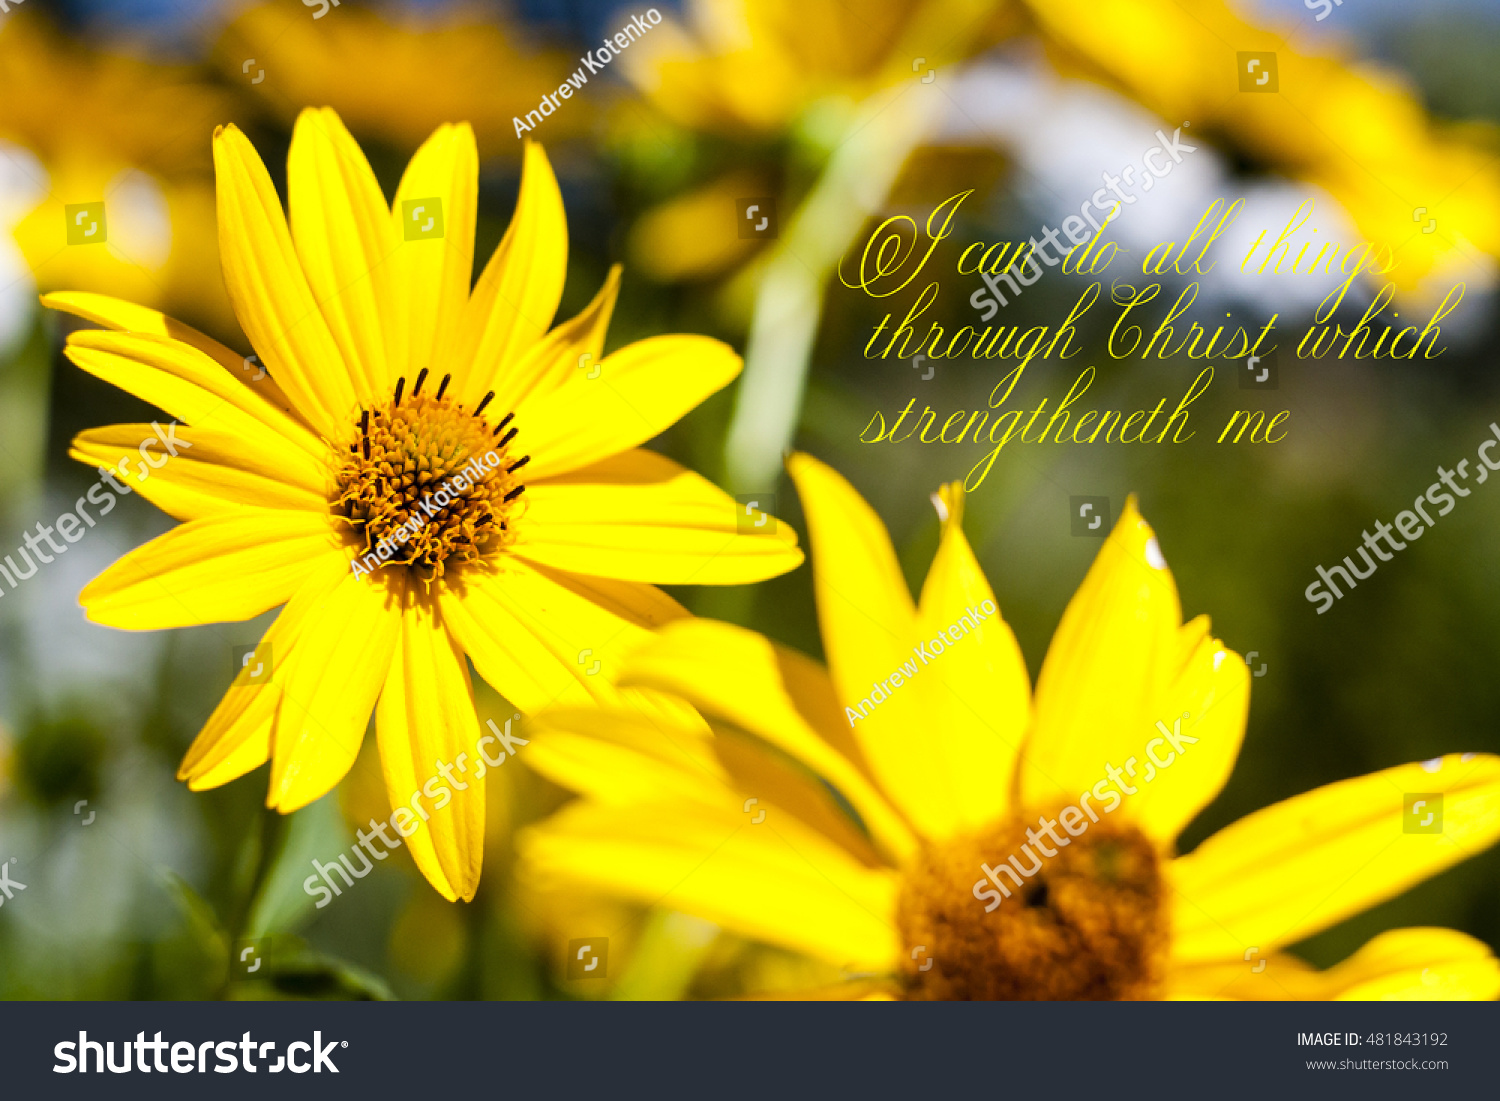 Yellow Flowers Bible Quote Stock Photo Edit Now 481843192